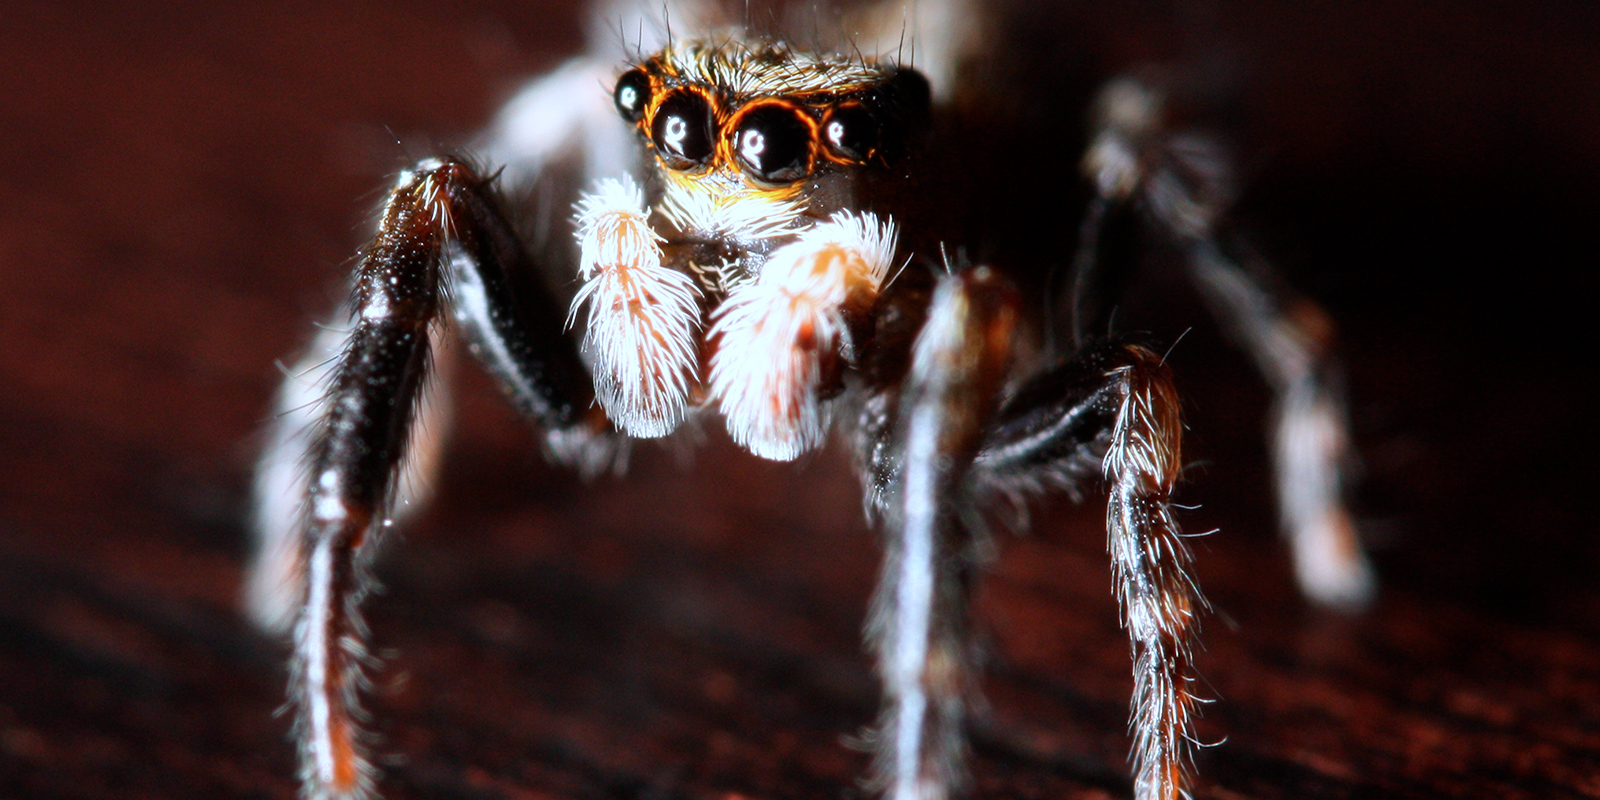 a close up of a spider showing it's big eyes and long legs